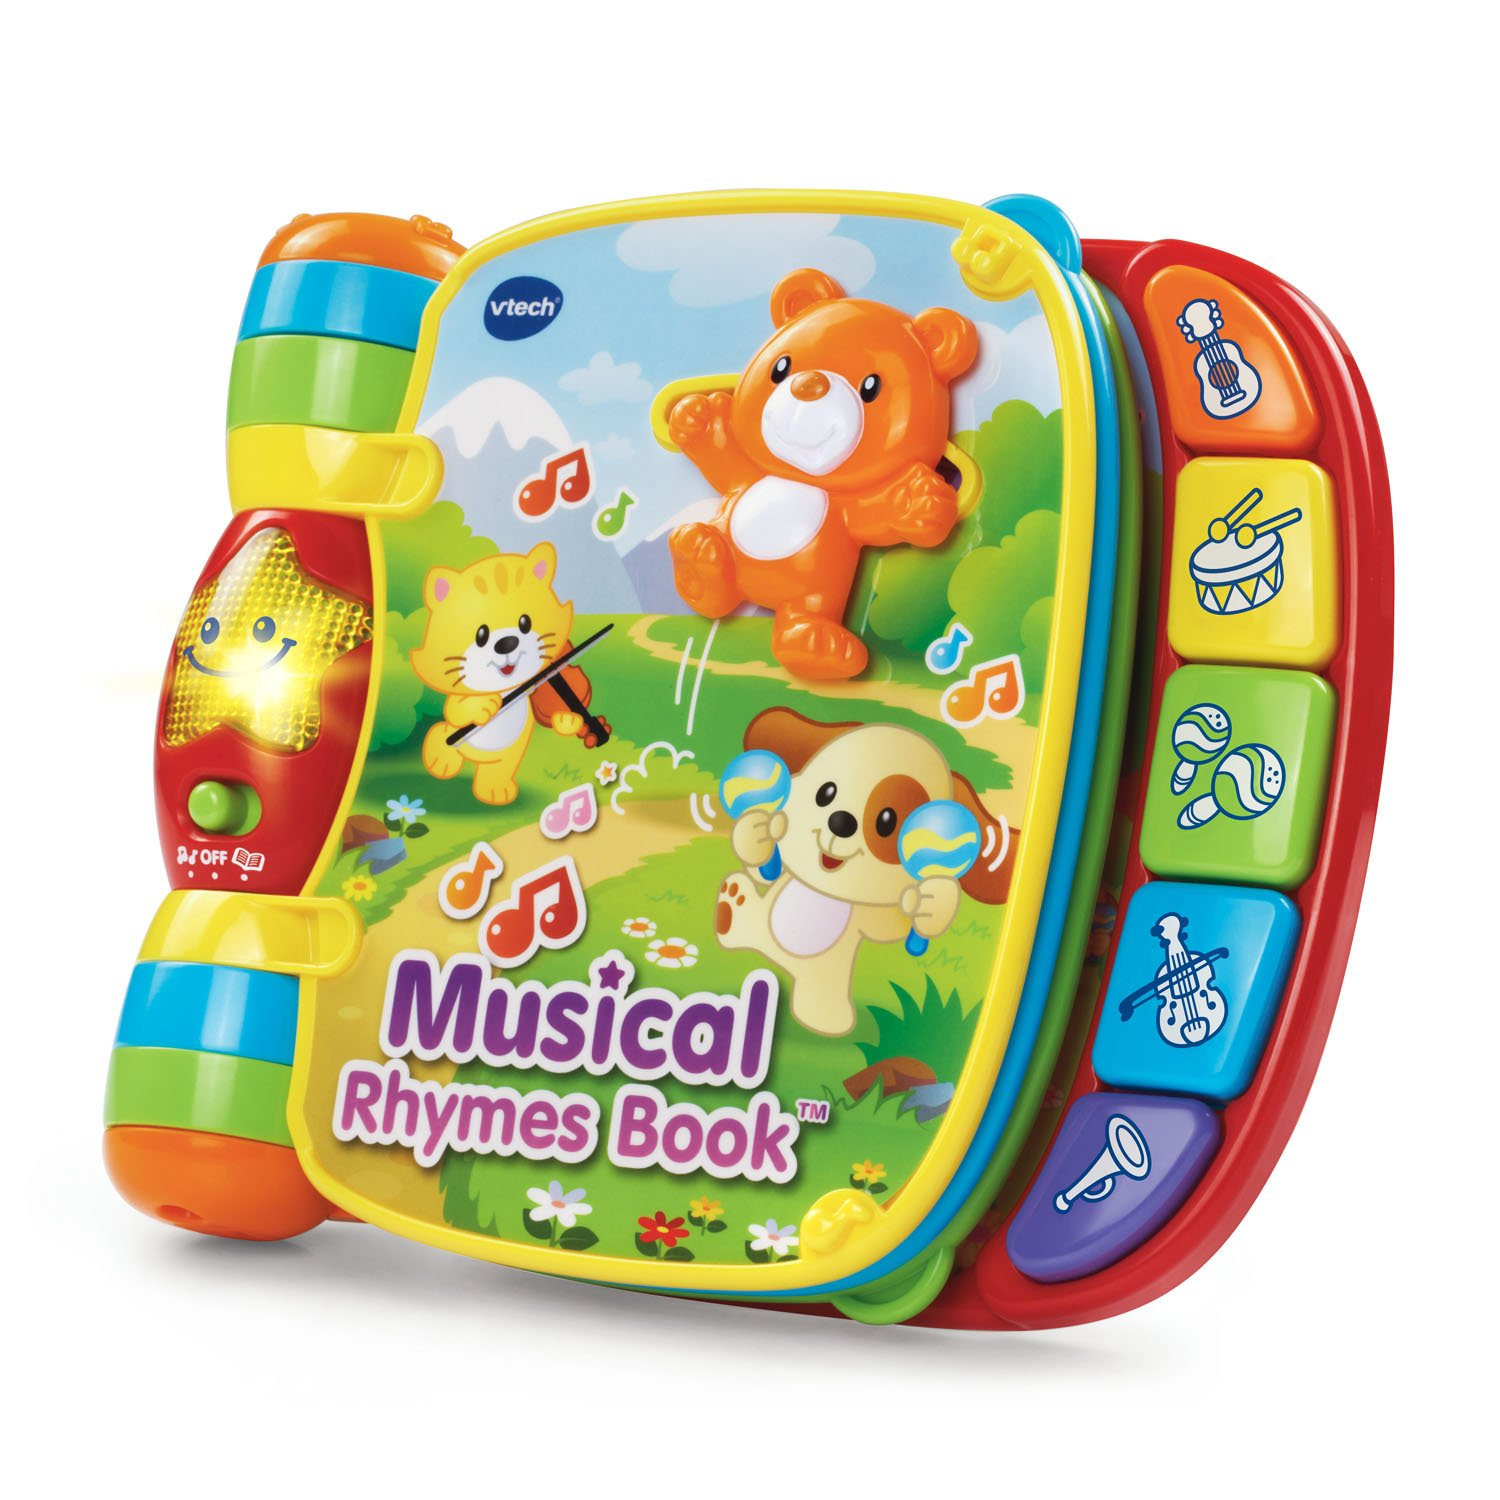 B00TEF3GSA VTech Musical Rhymes Book, Red 71ZINEo5joL